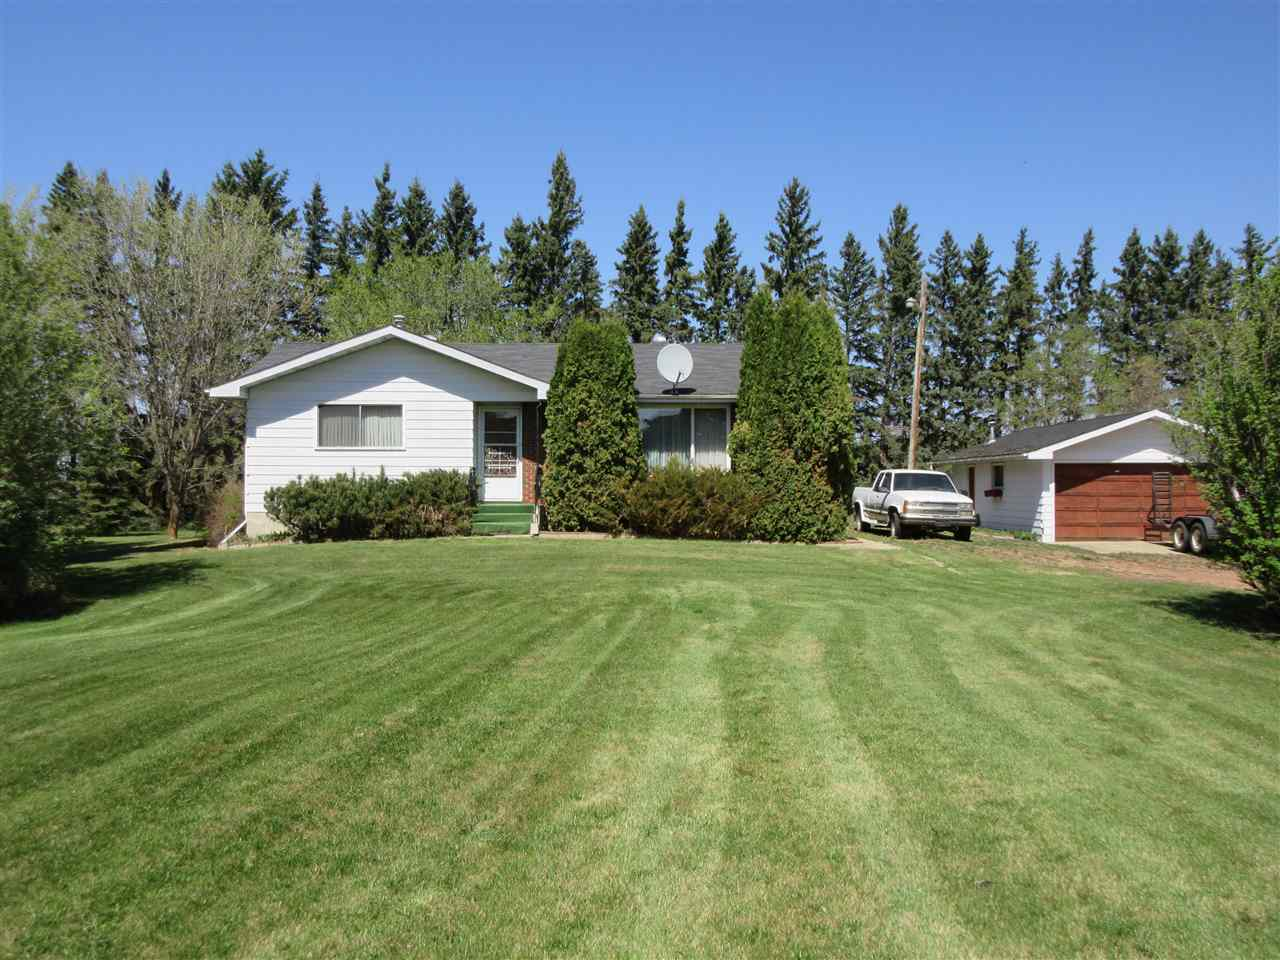 Main Photo: 24032 Highway 37: Rural Sturgeon County House for sale : MLS®# E4111346